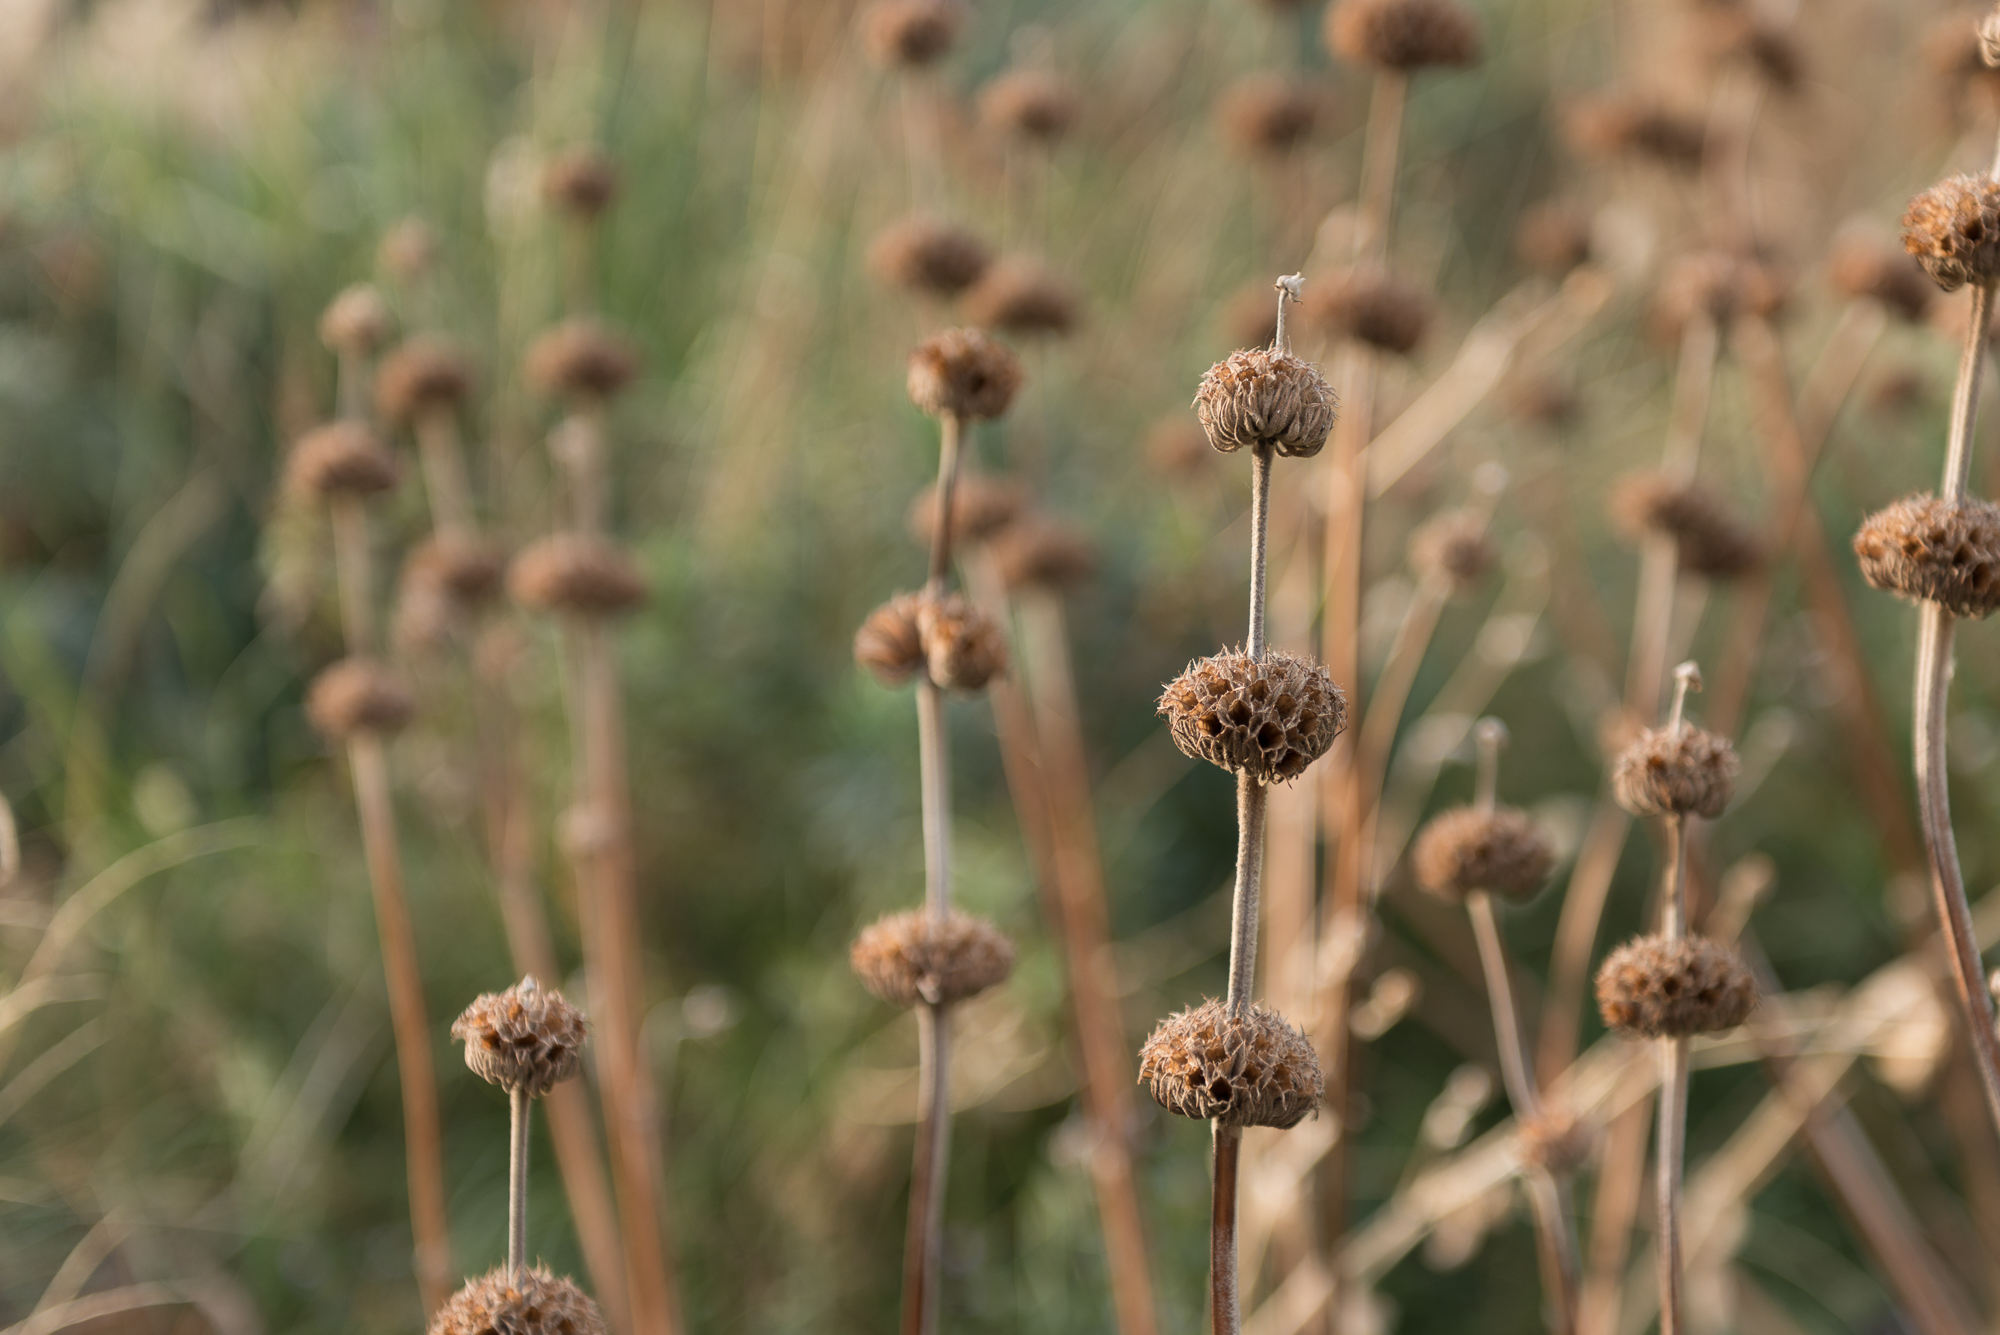 A close-up shot of some seedpods in grasses.